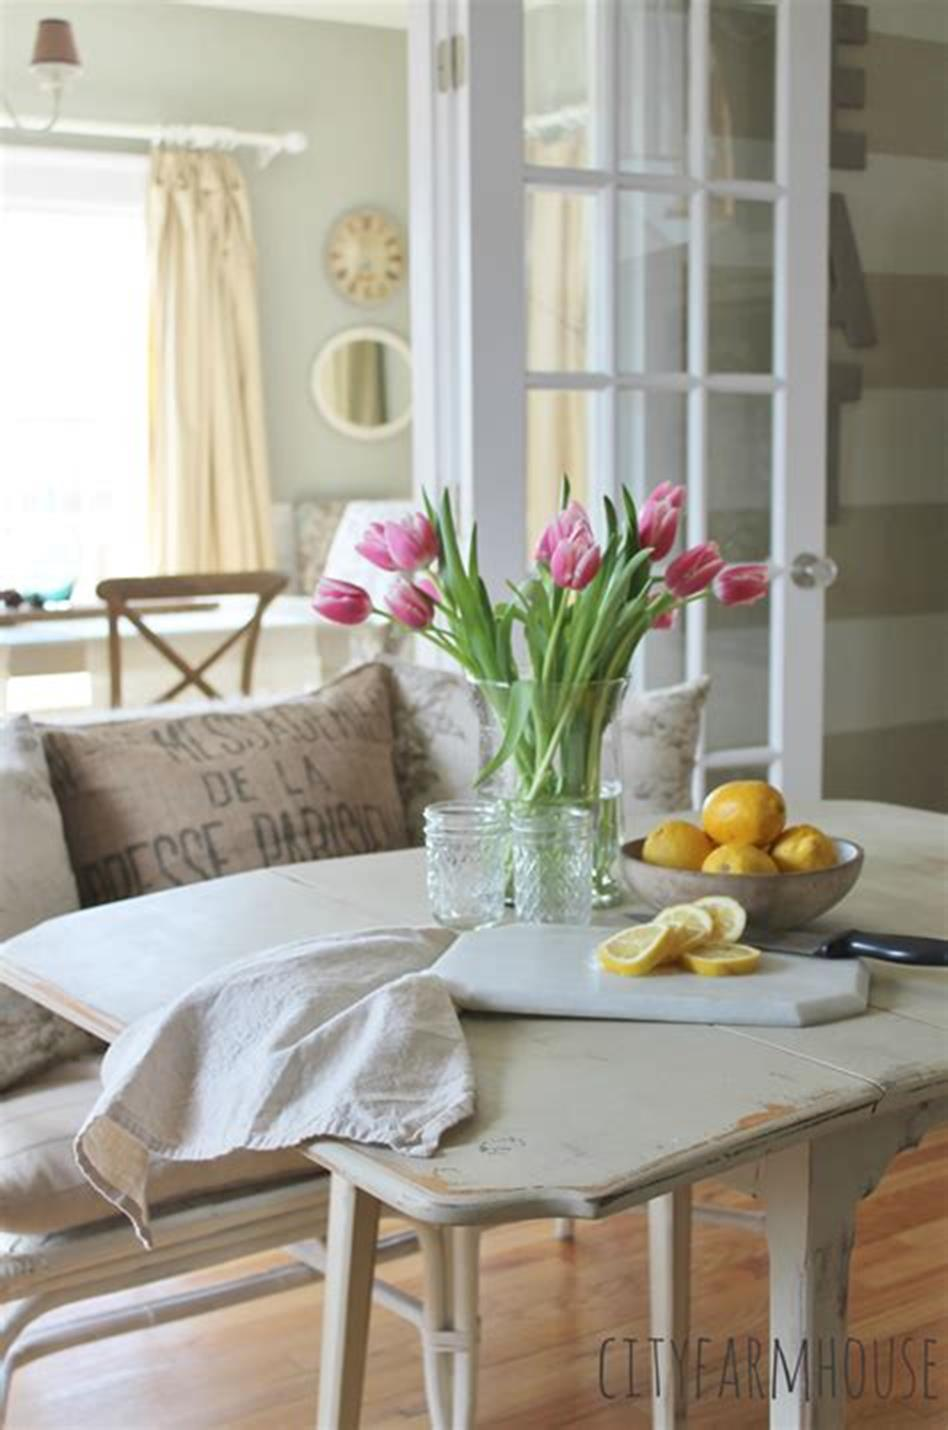 35 Stunning Spring Kitchen and Dining Room Decorating Ideas 2019 41